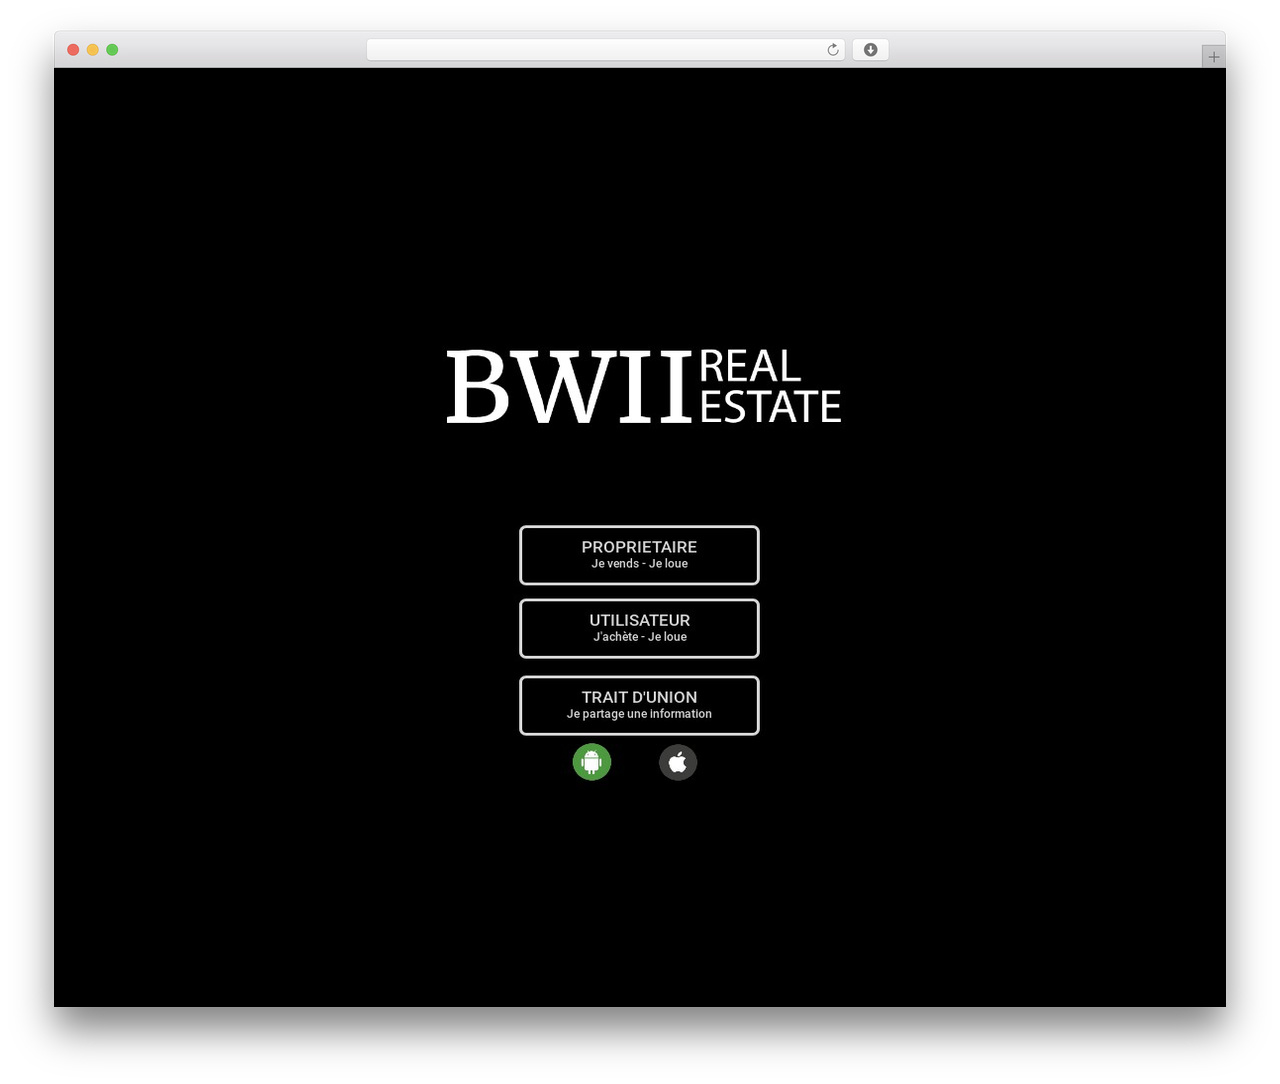 Betheme best real estate website - b-wii.com